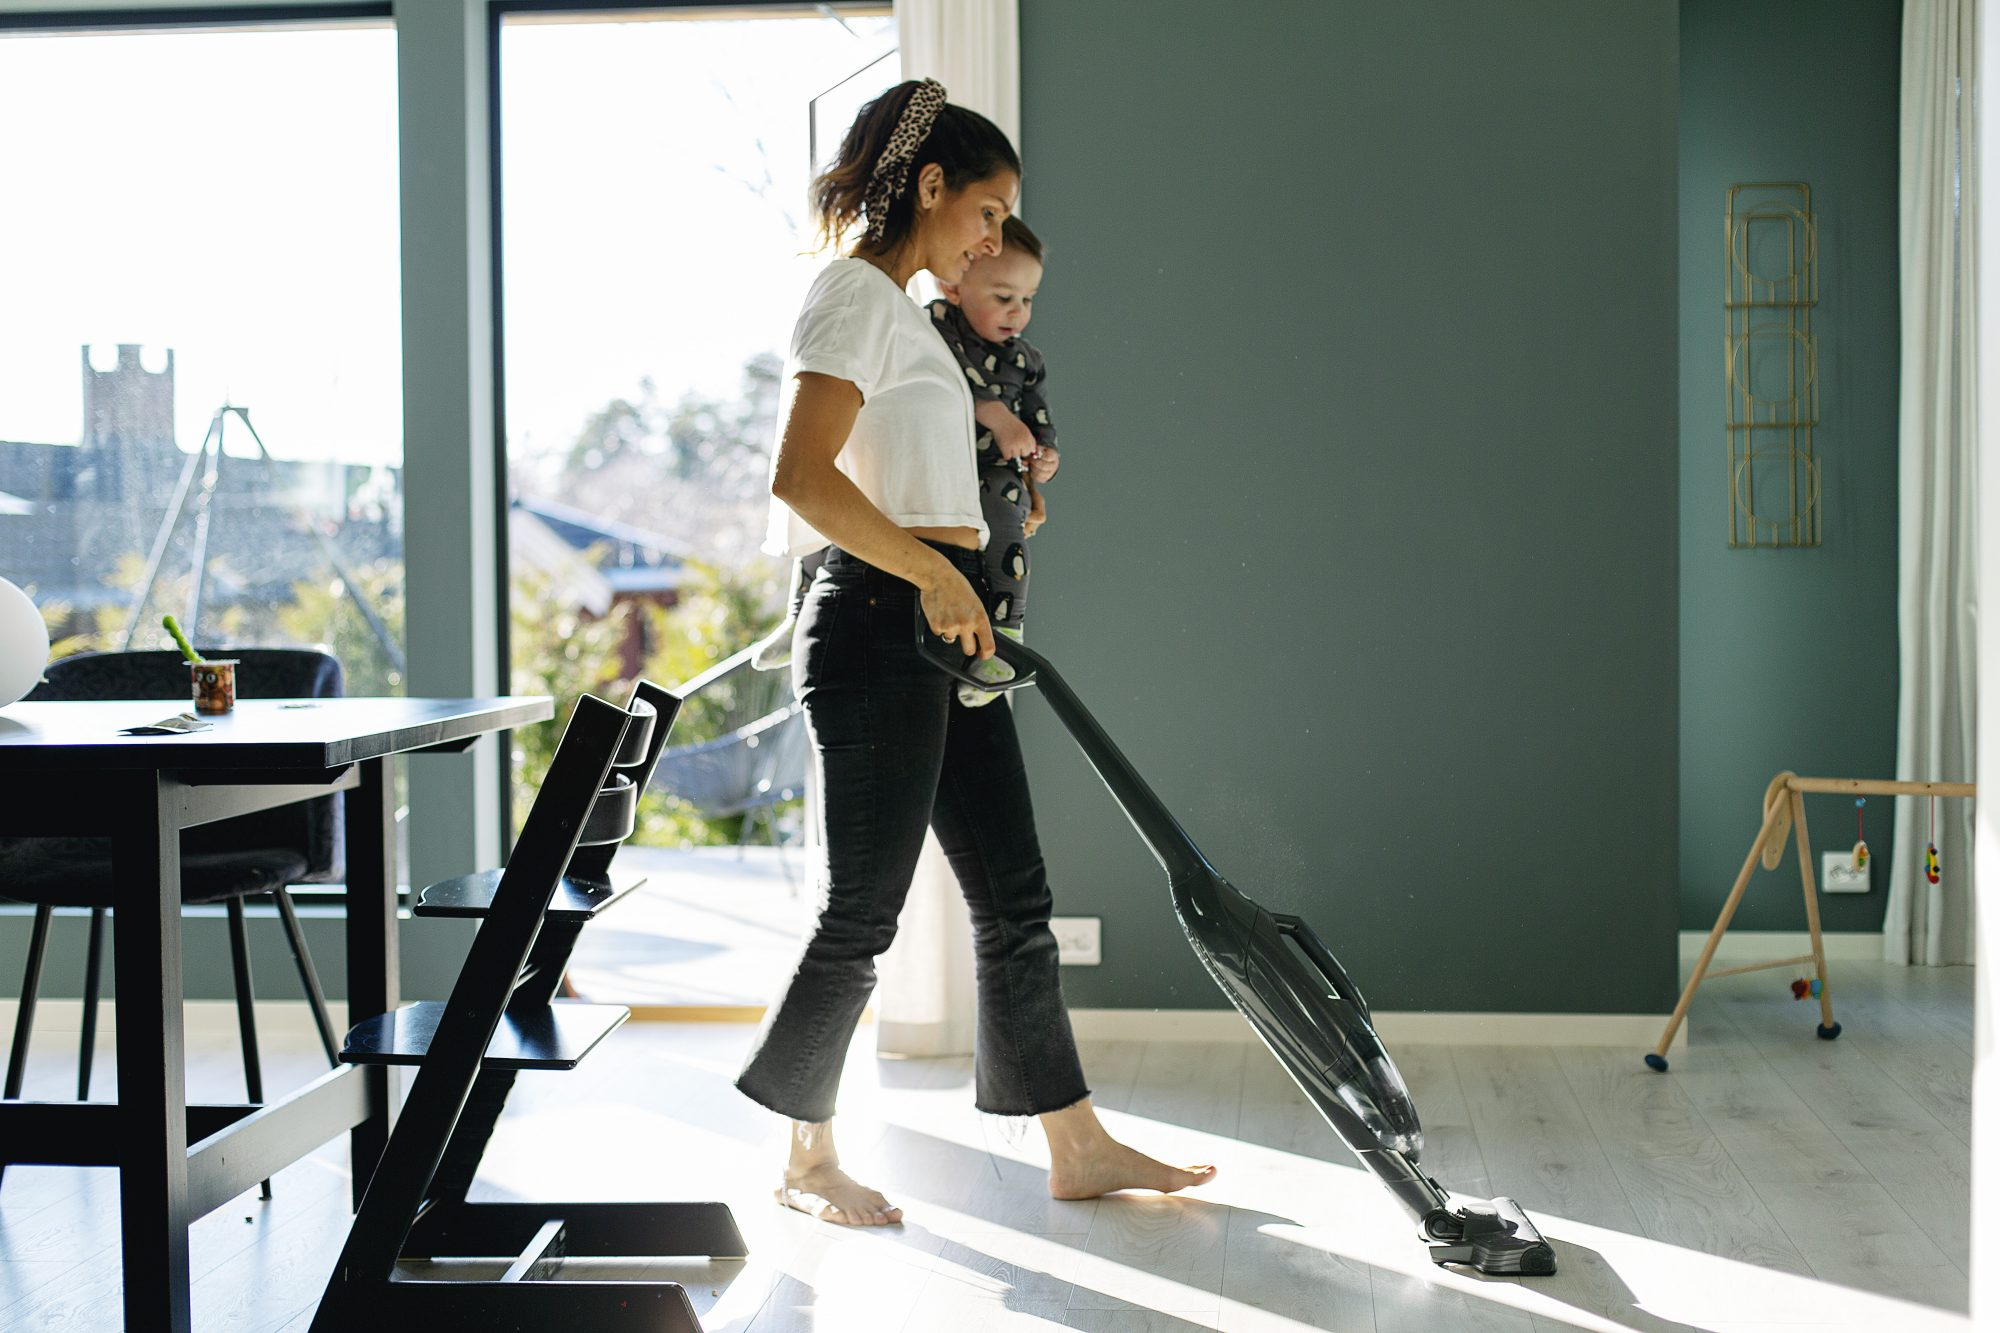 Mother vacuum cleaning while carrying toddler son